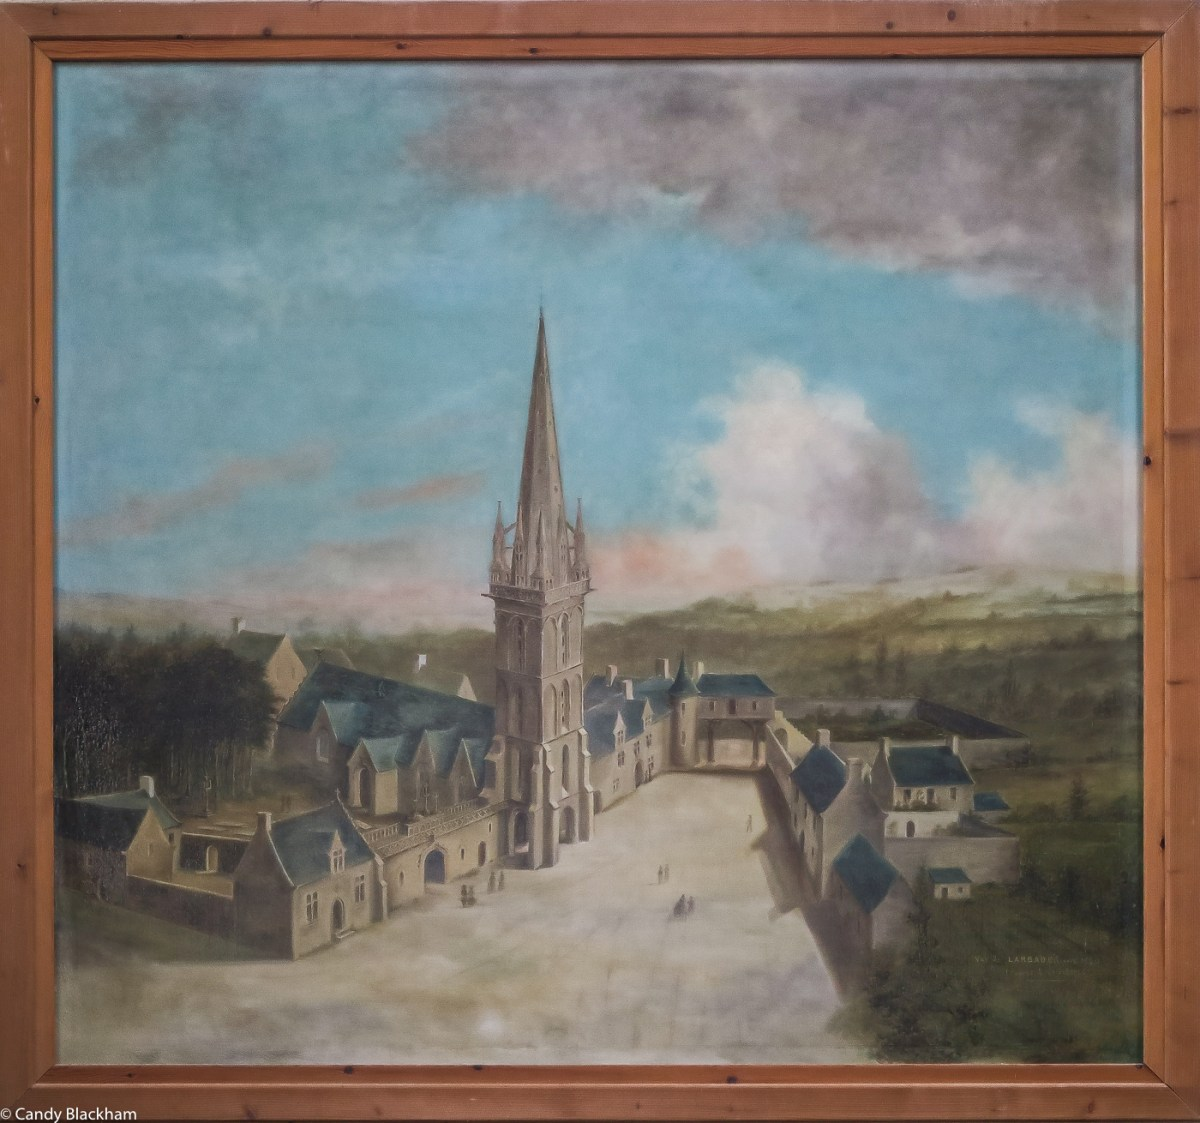 Painting of St Peter, Plouvorn